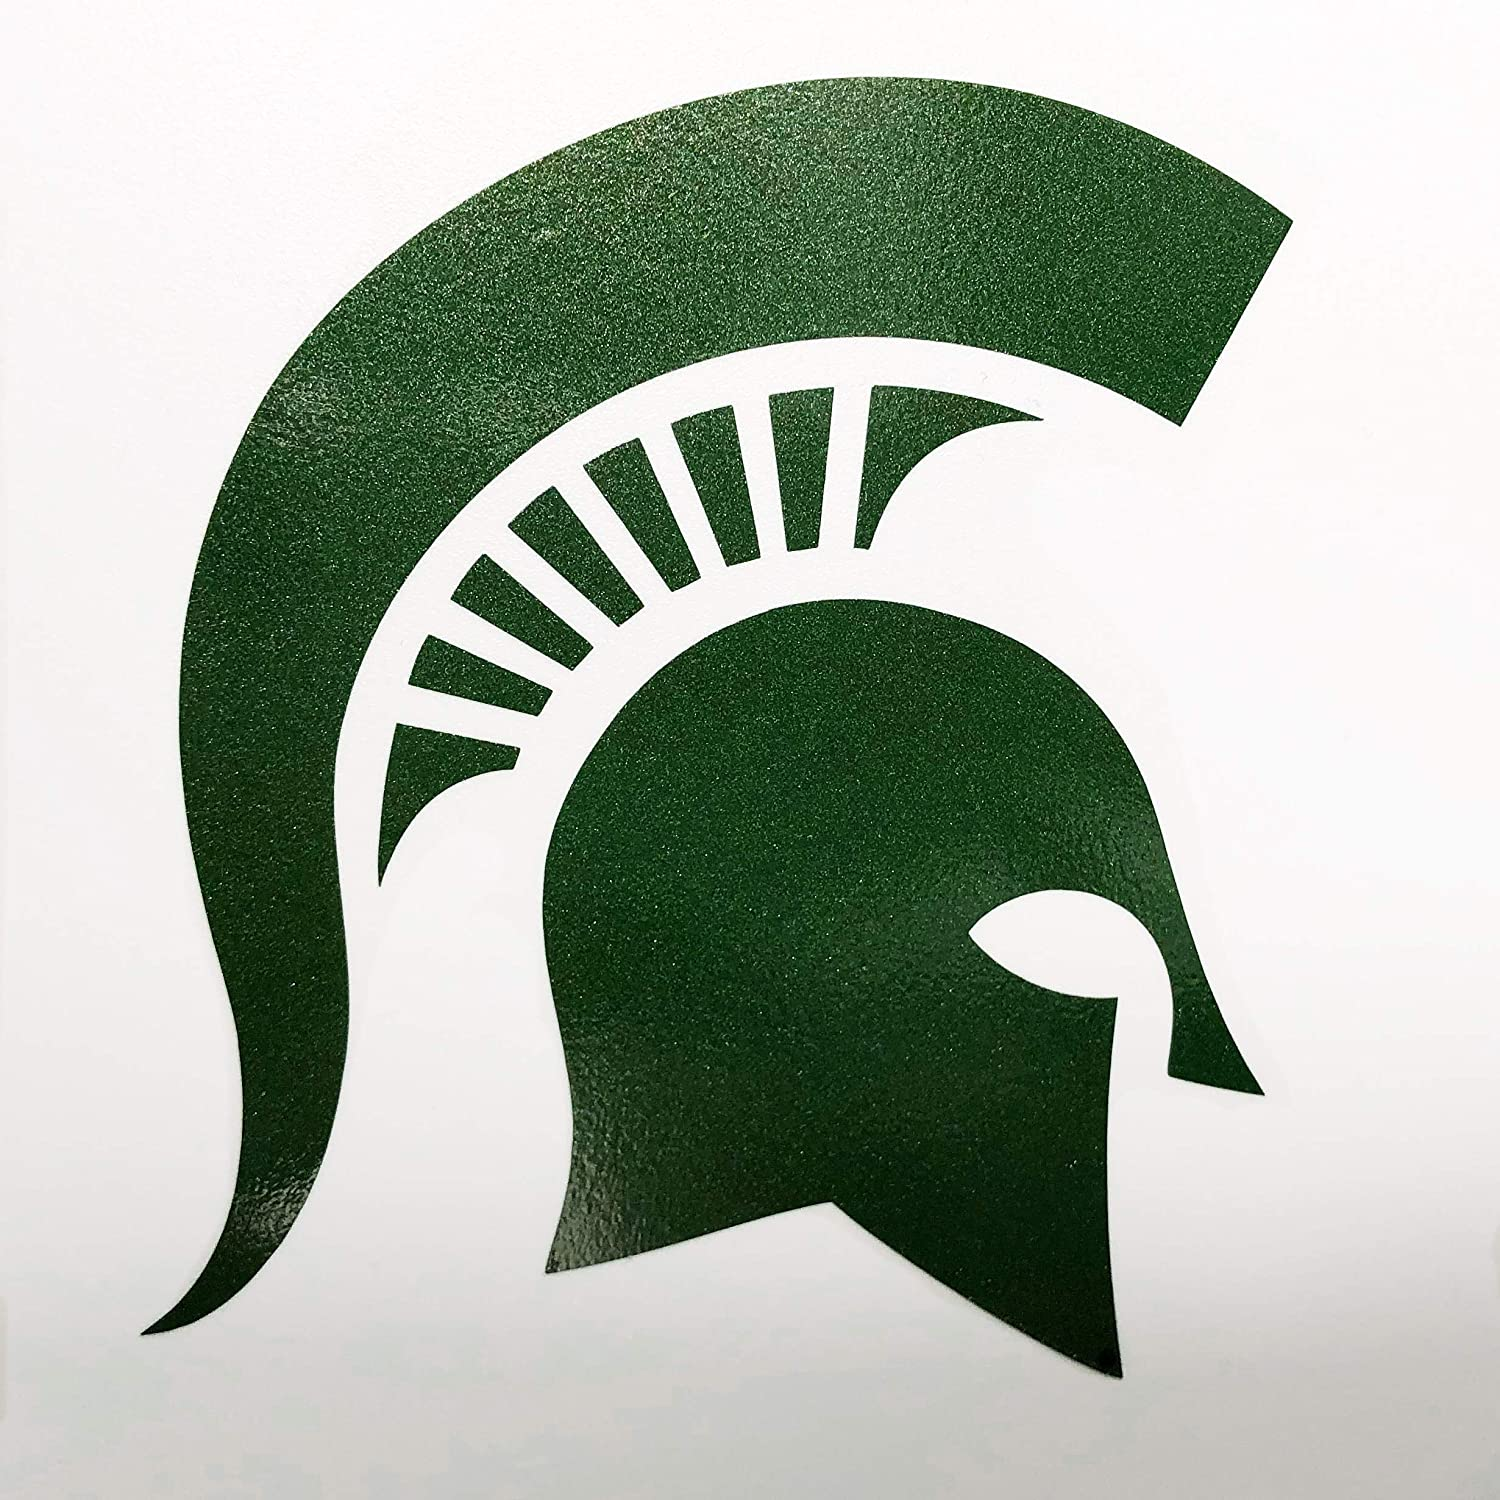 Amazon.com: Michigan State MSU Spartans Metallic Green Spartan ...